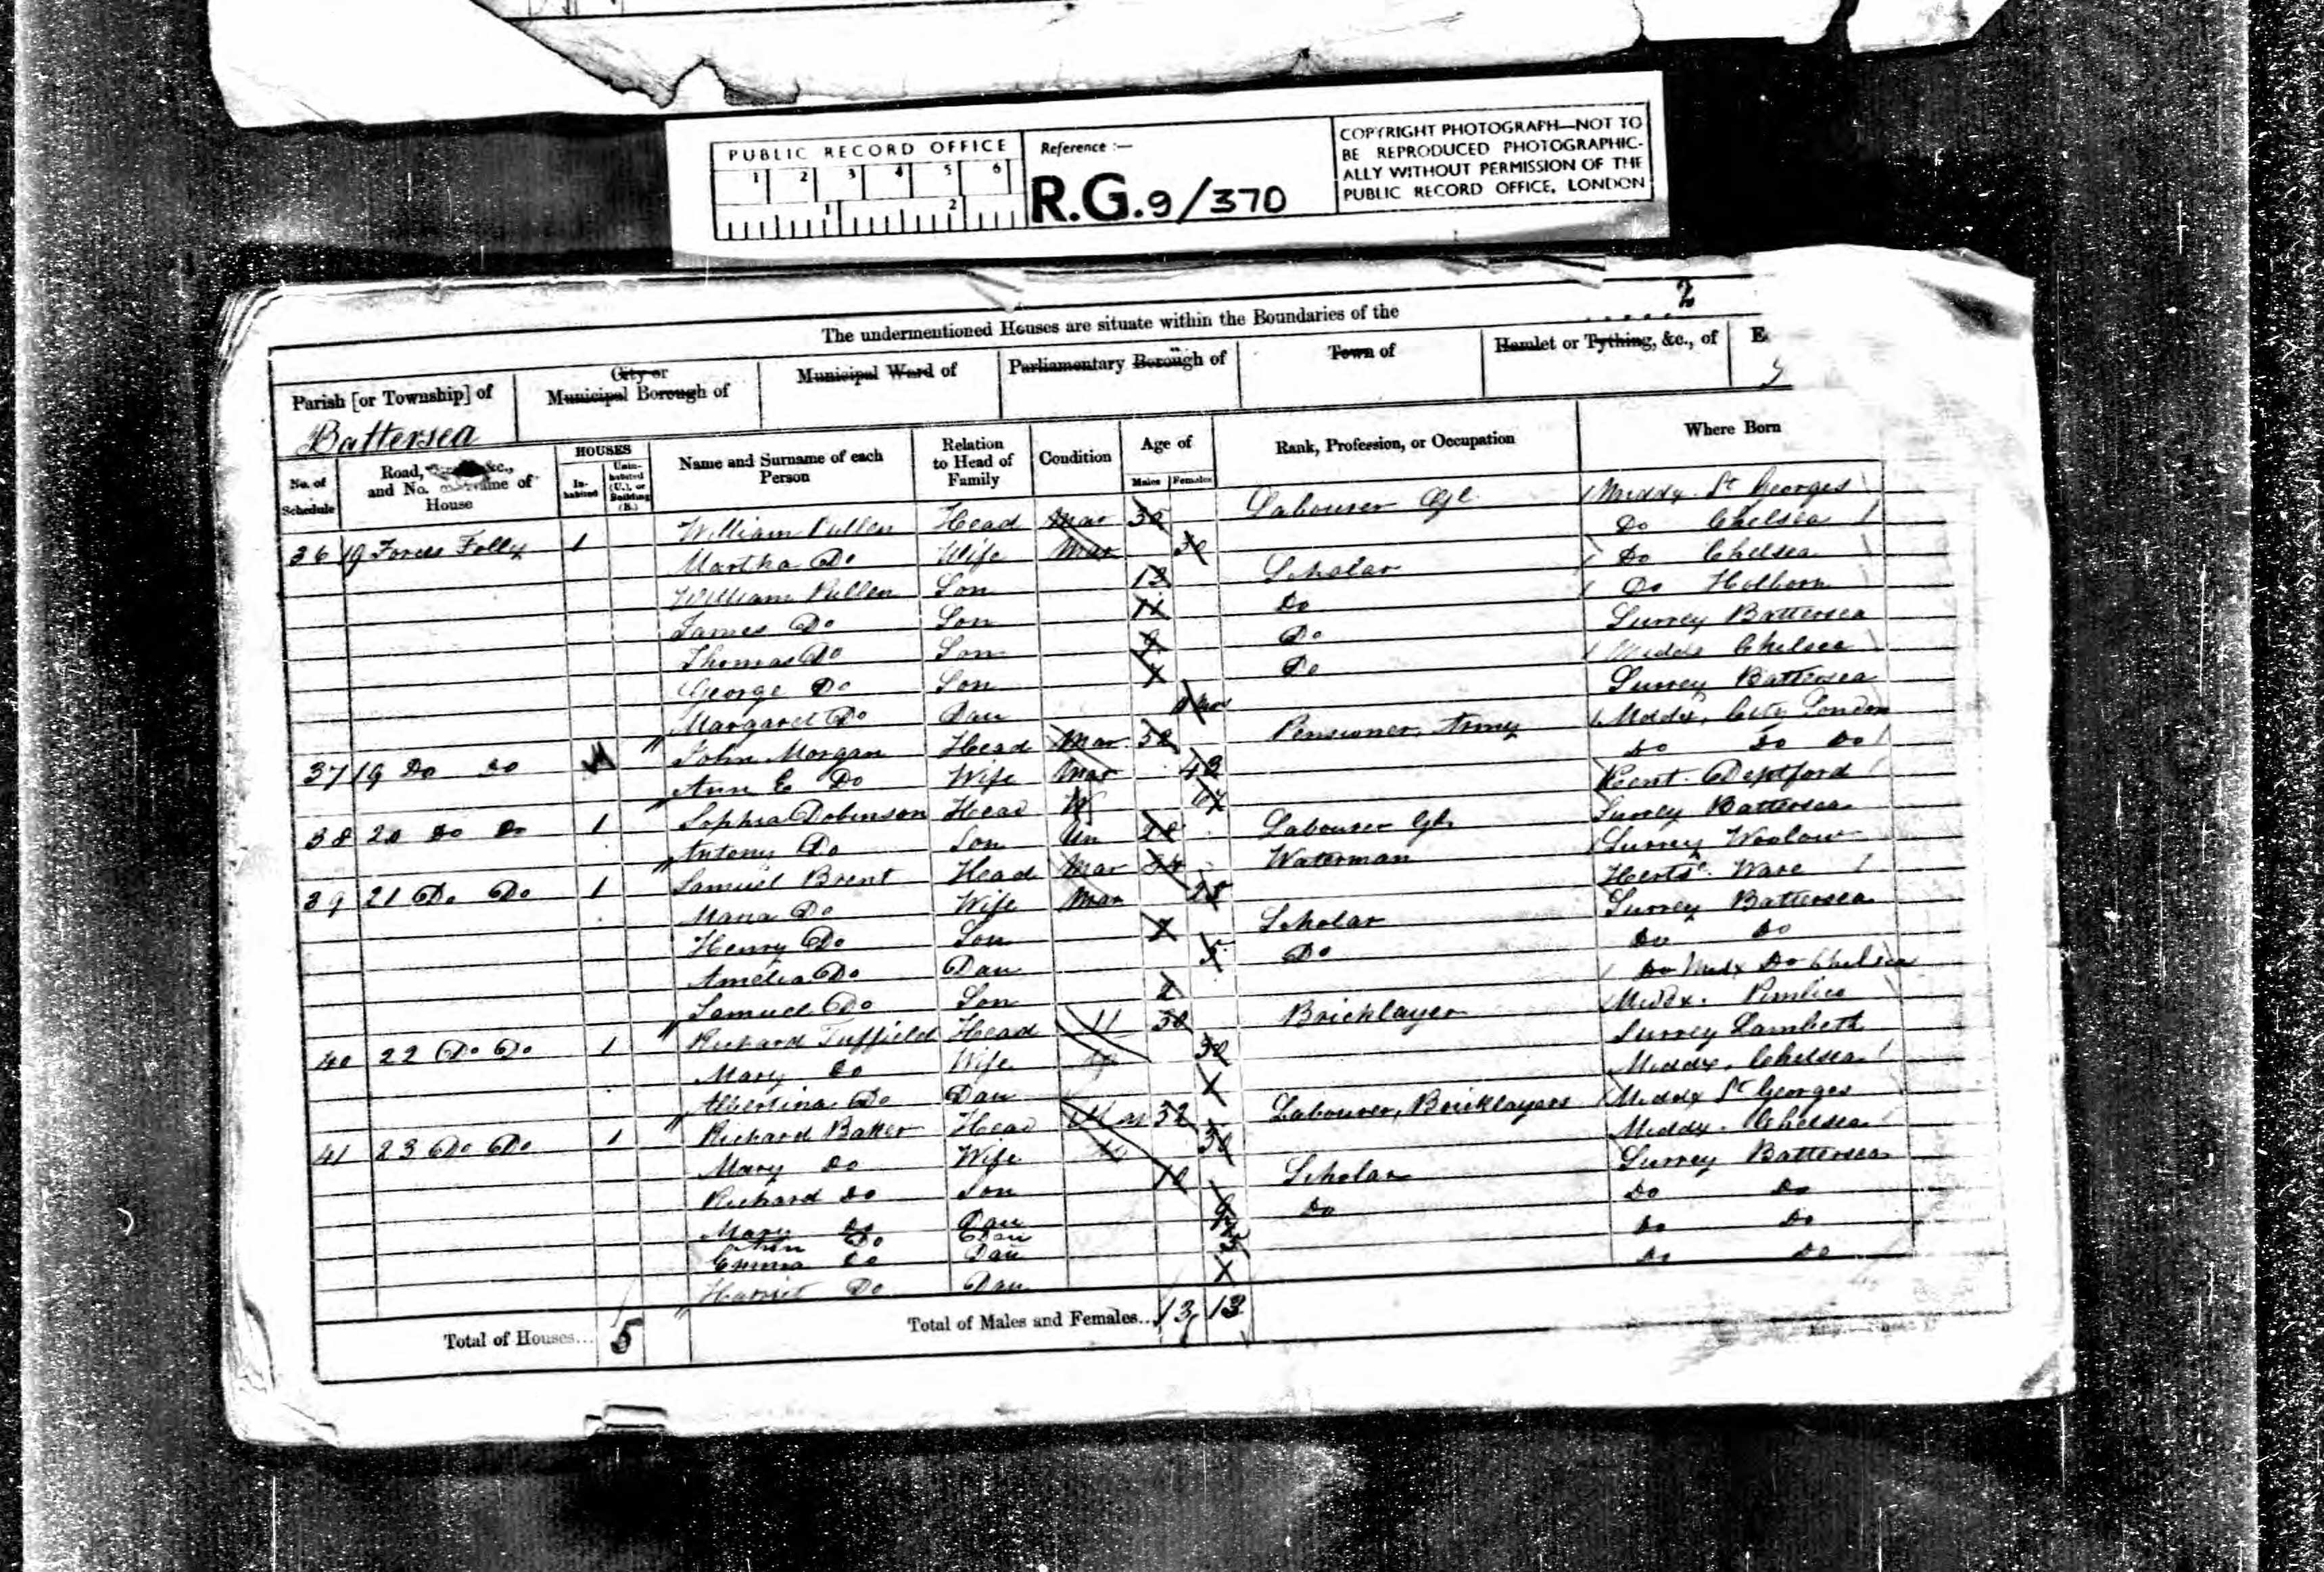 1861 England Census Record for Eliza Sophia Dobinson